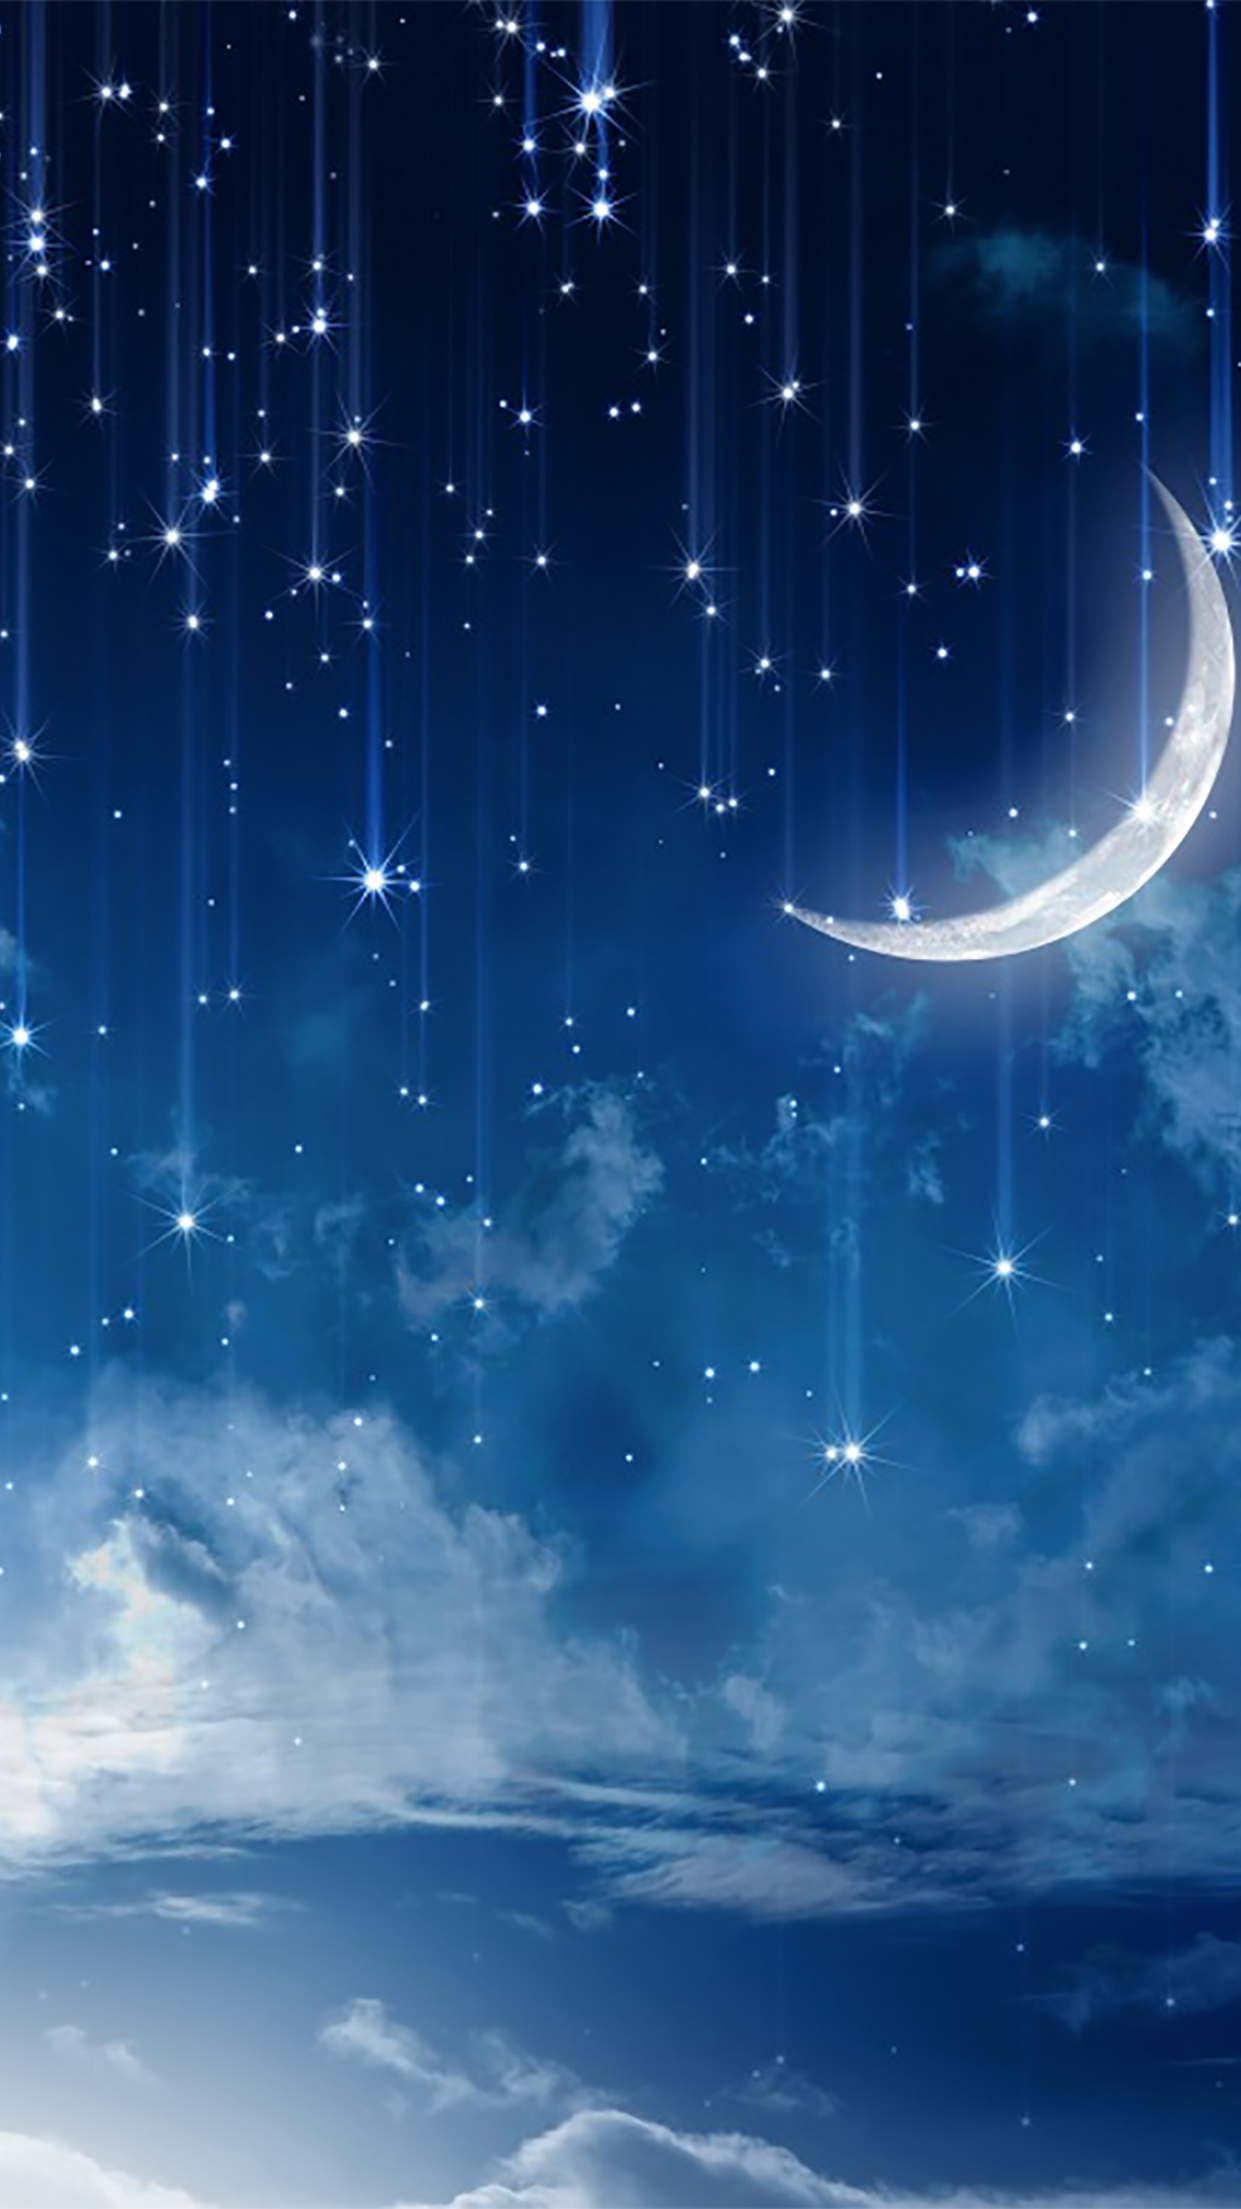 Cute Patterns Iphone Wallpaper Sky Sky With Stars And Moon Wallpaper For Iphone X 8 7